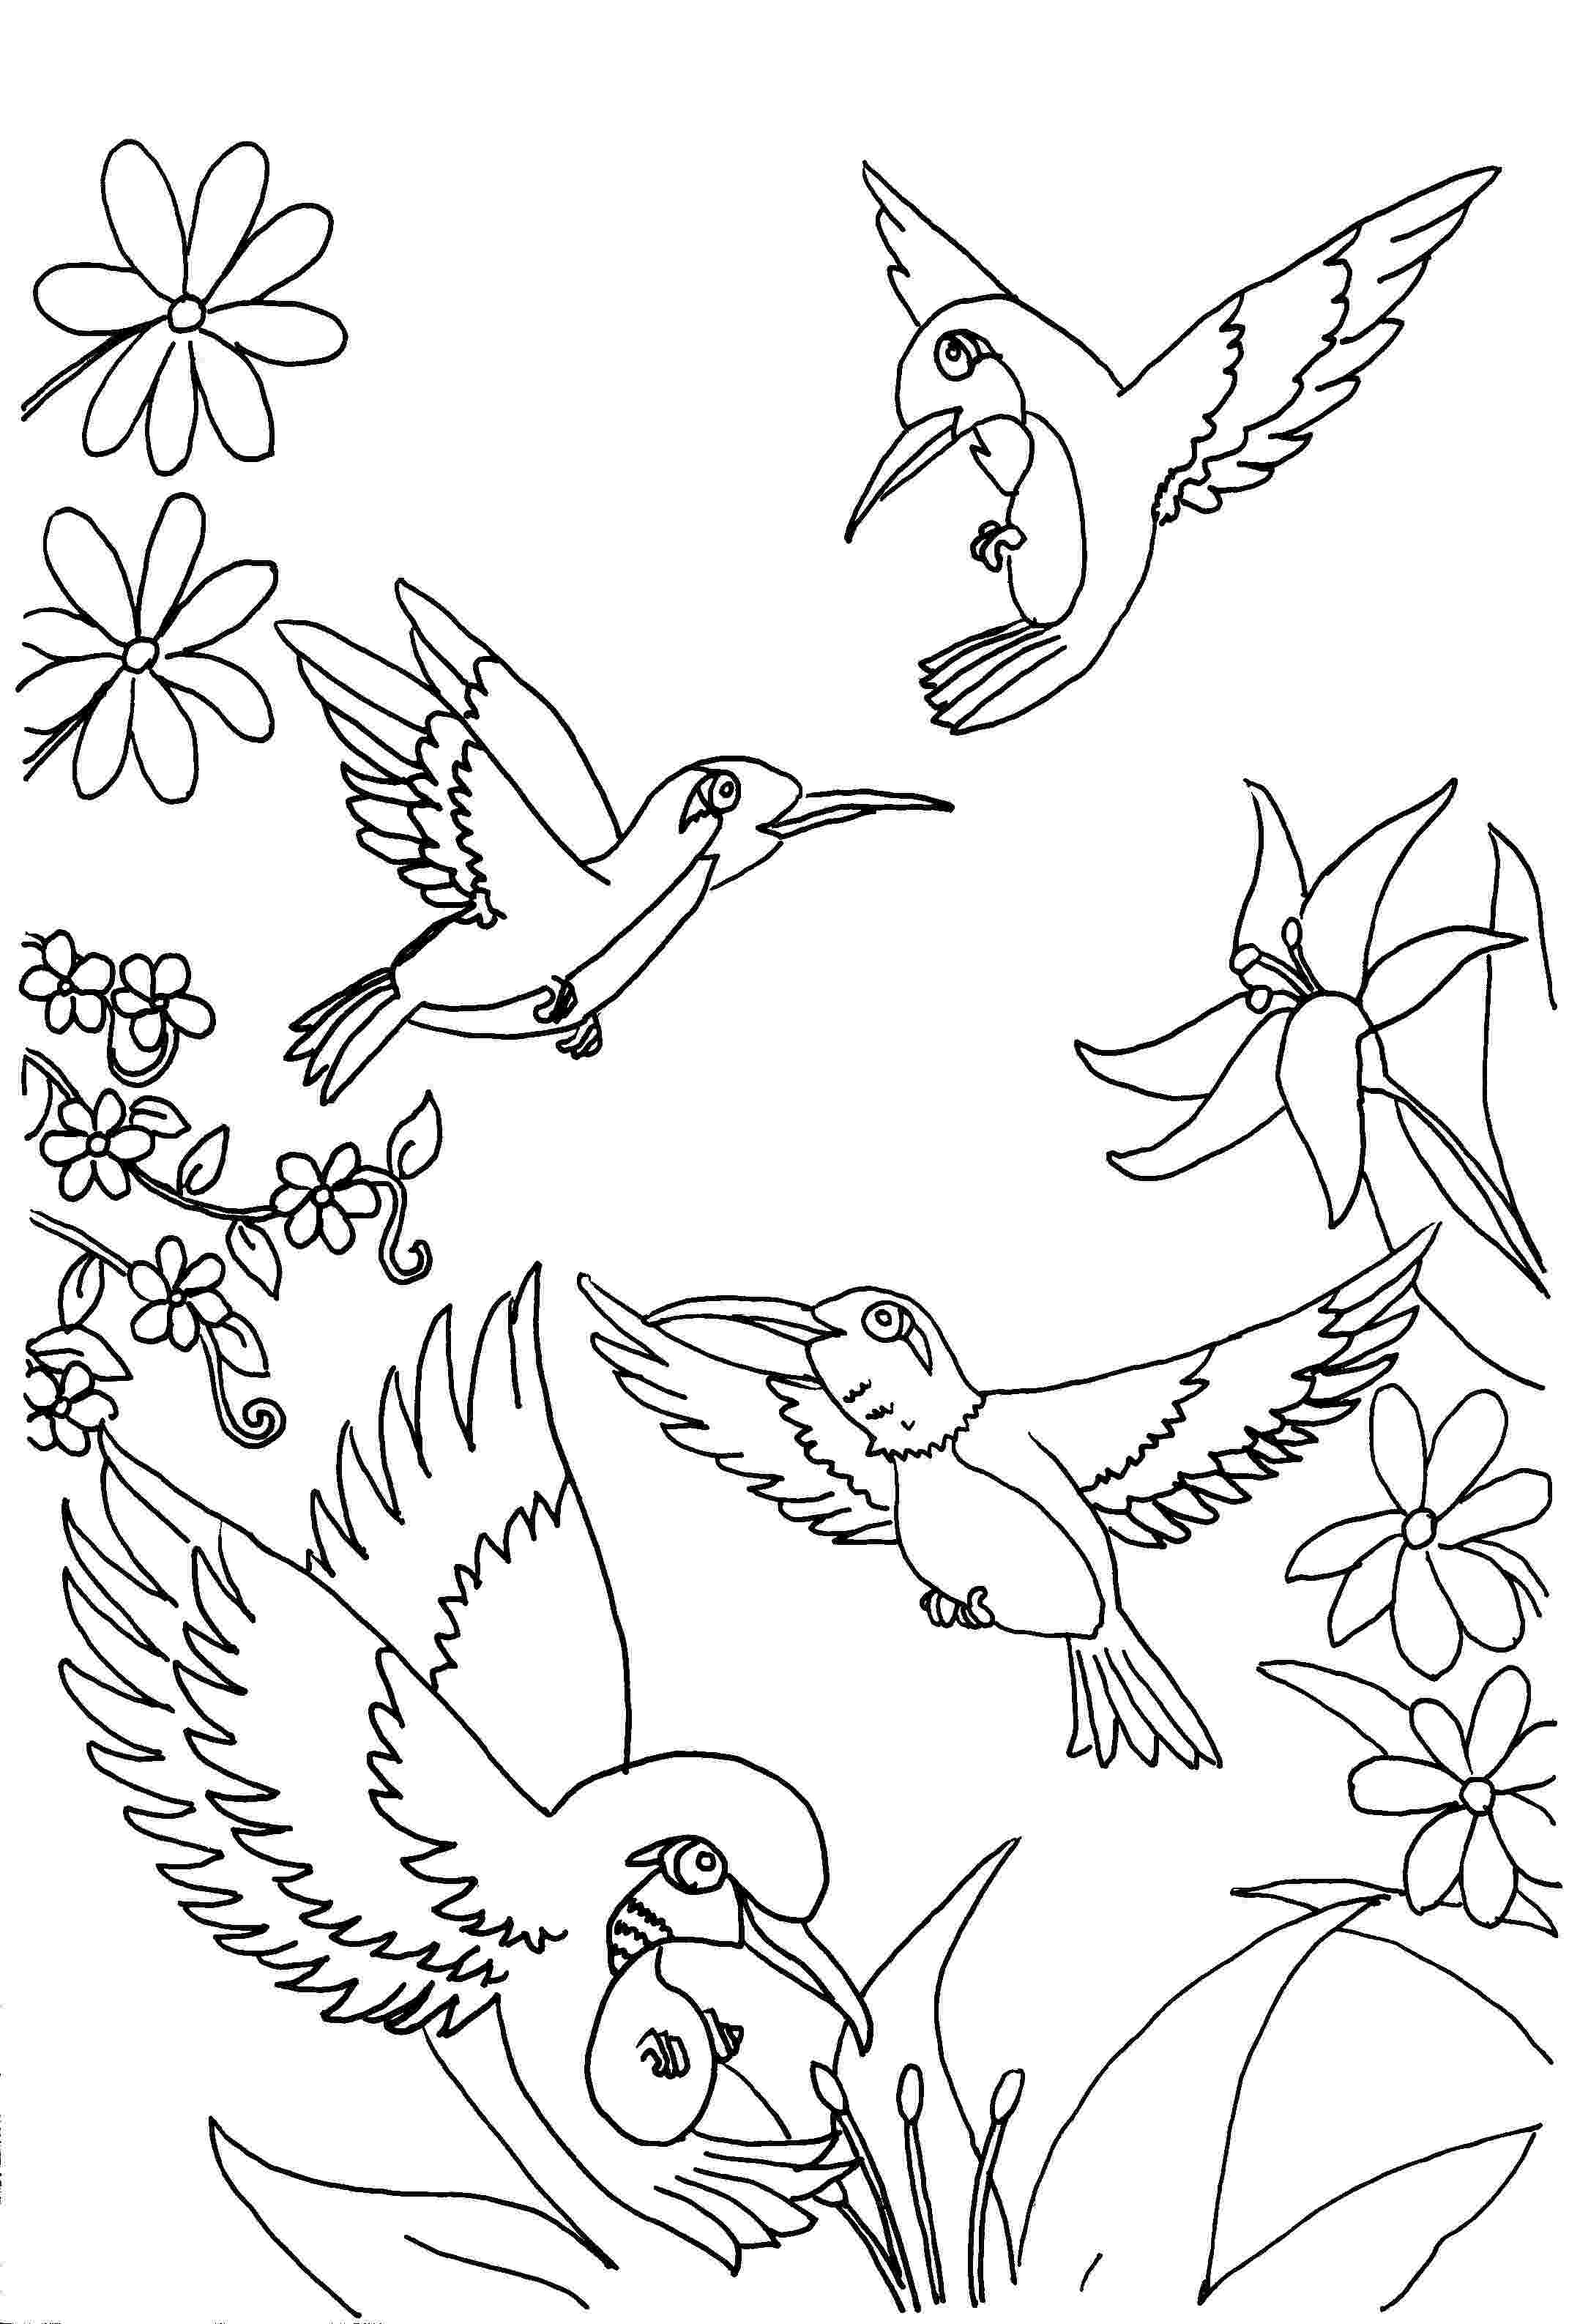 hummingbird coloring sheet hummingbird coloring pages to download and print for free sheet coloring hummingbird